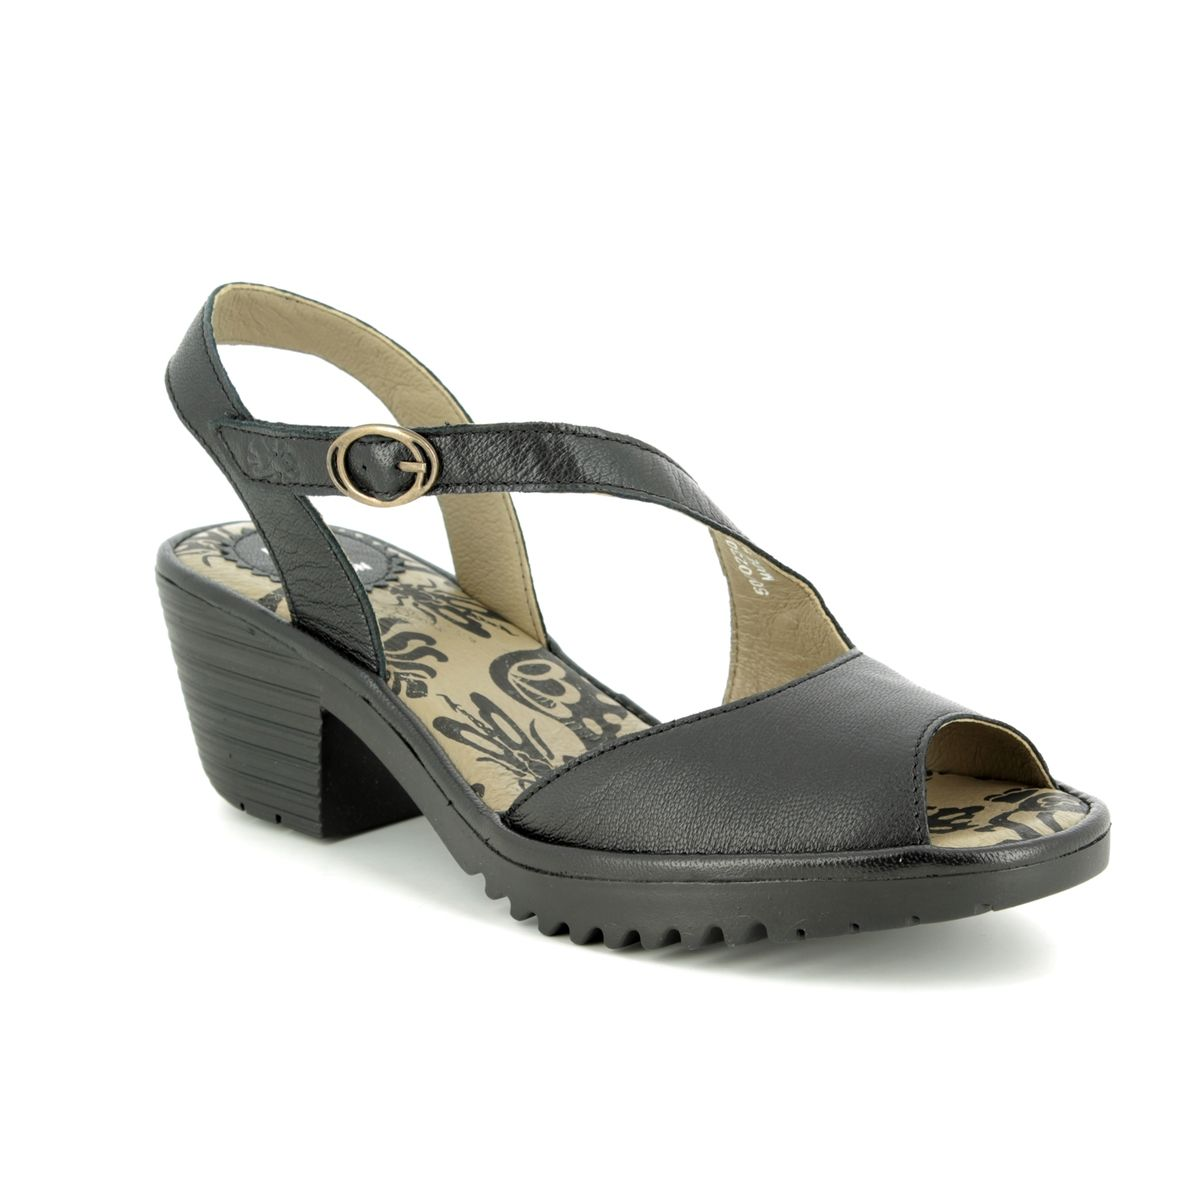 fdee565a992 Fly London Wyno P501023-000 Black leather Wedge Sandals